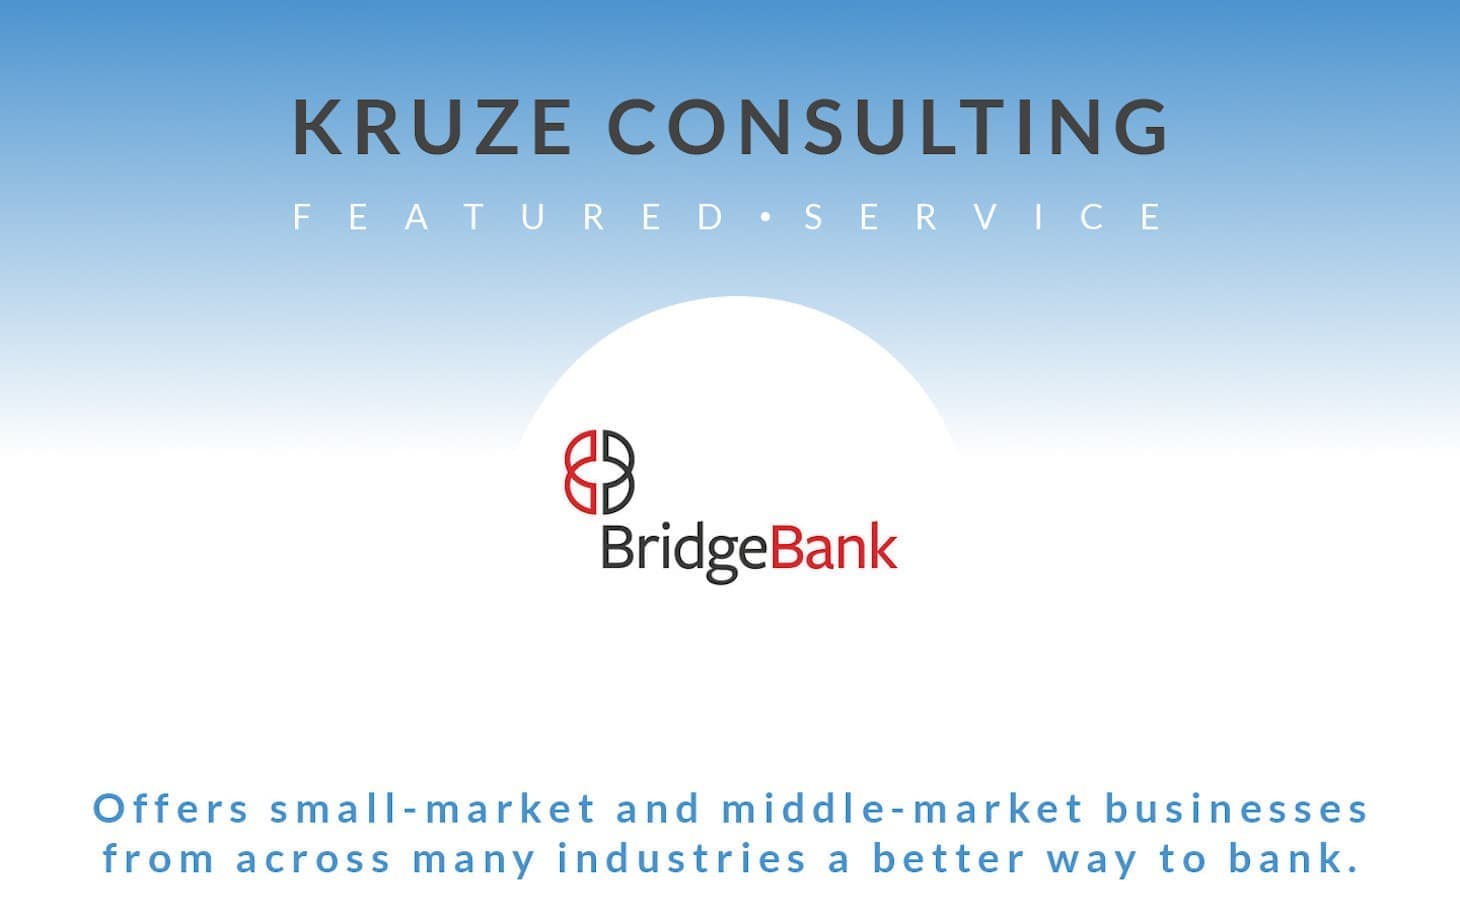 Featured Service - Bridge Bank